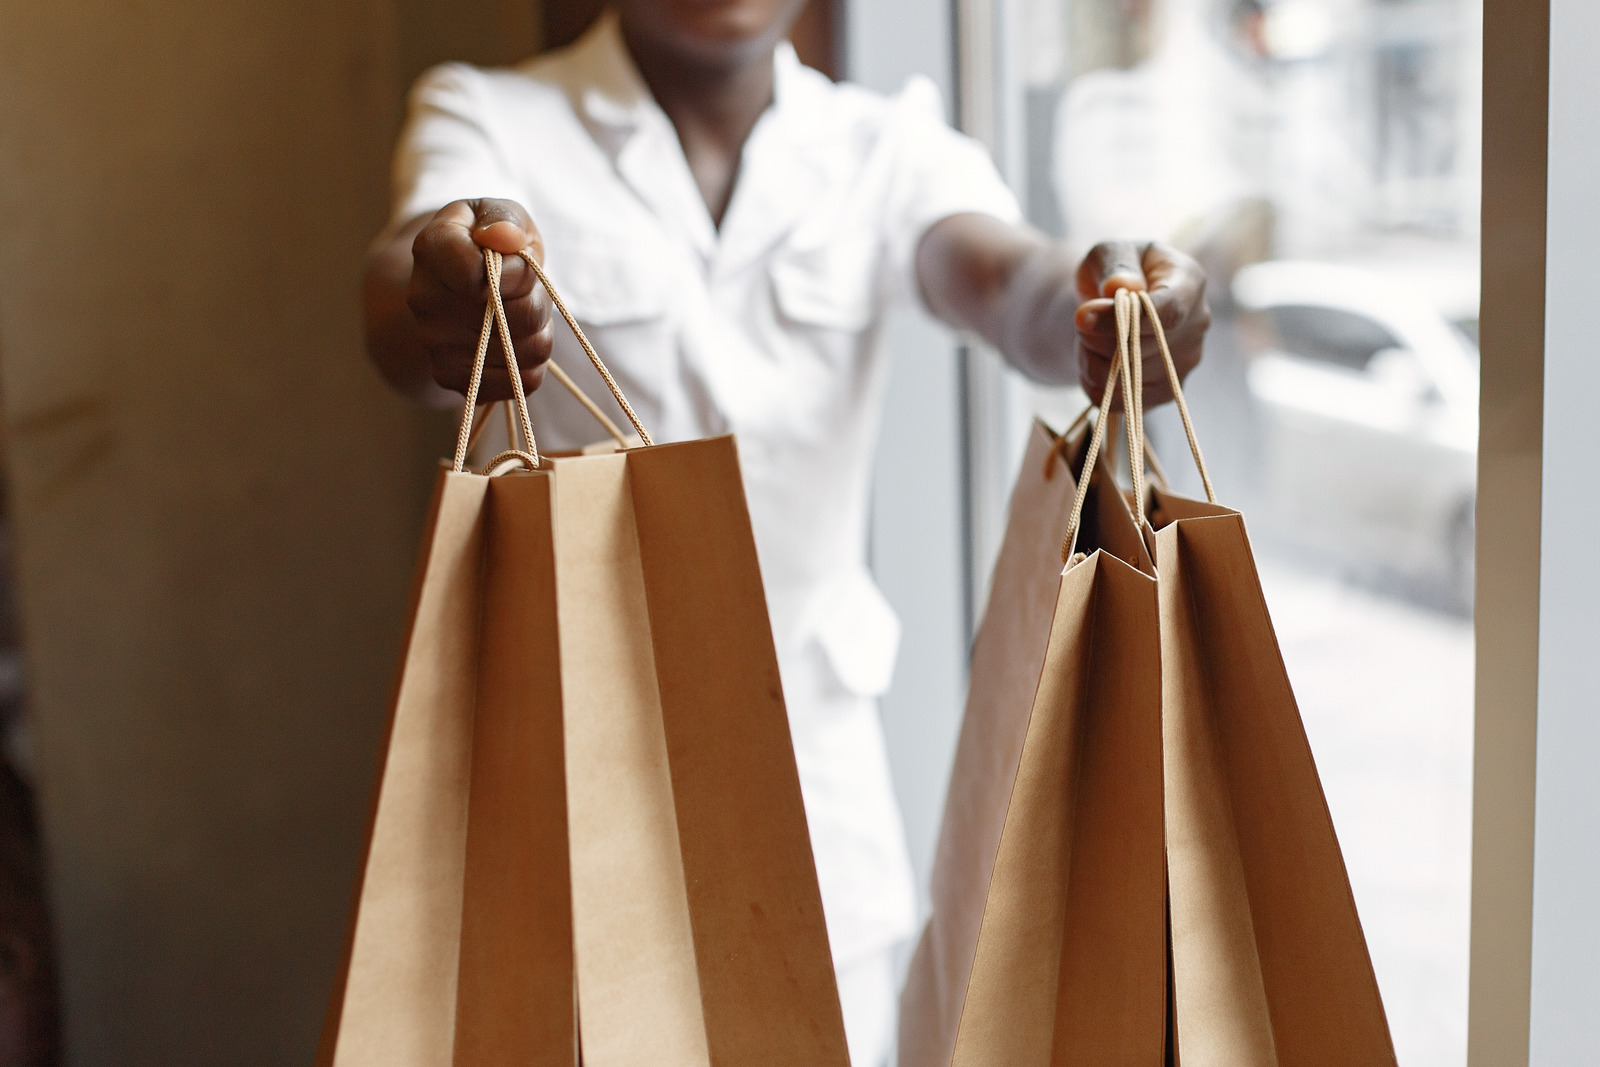 Sales clerk handing bags from an impulsive shopping trip